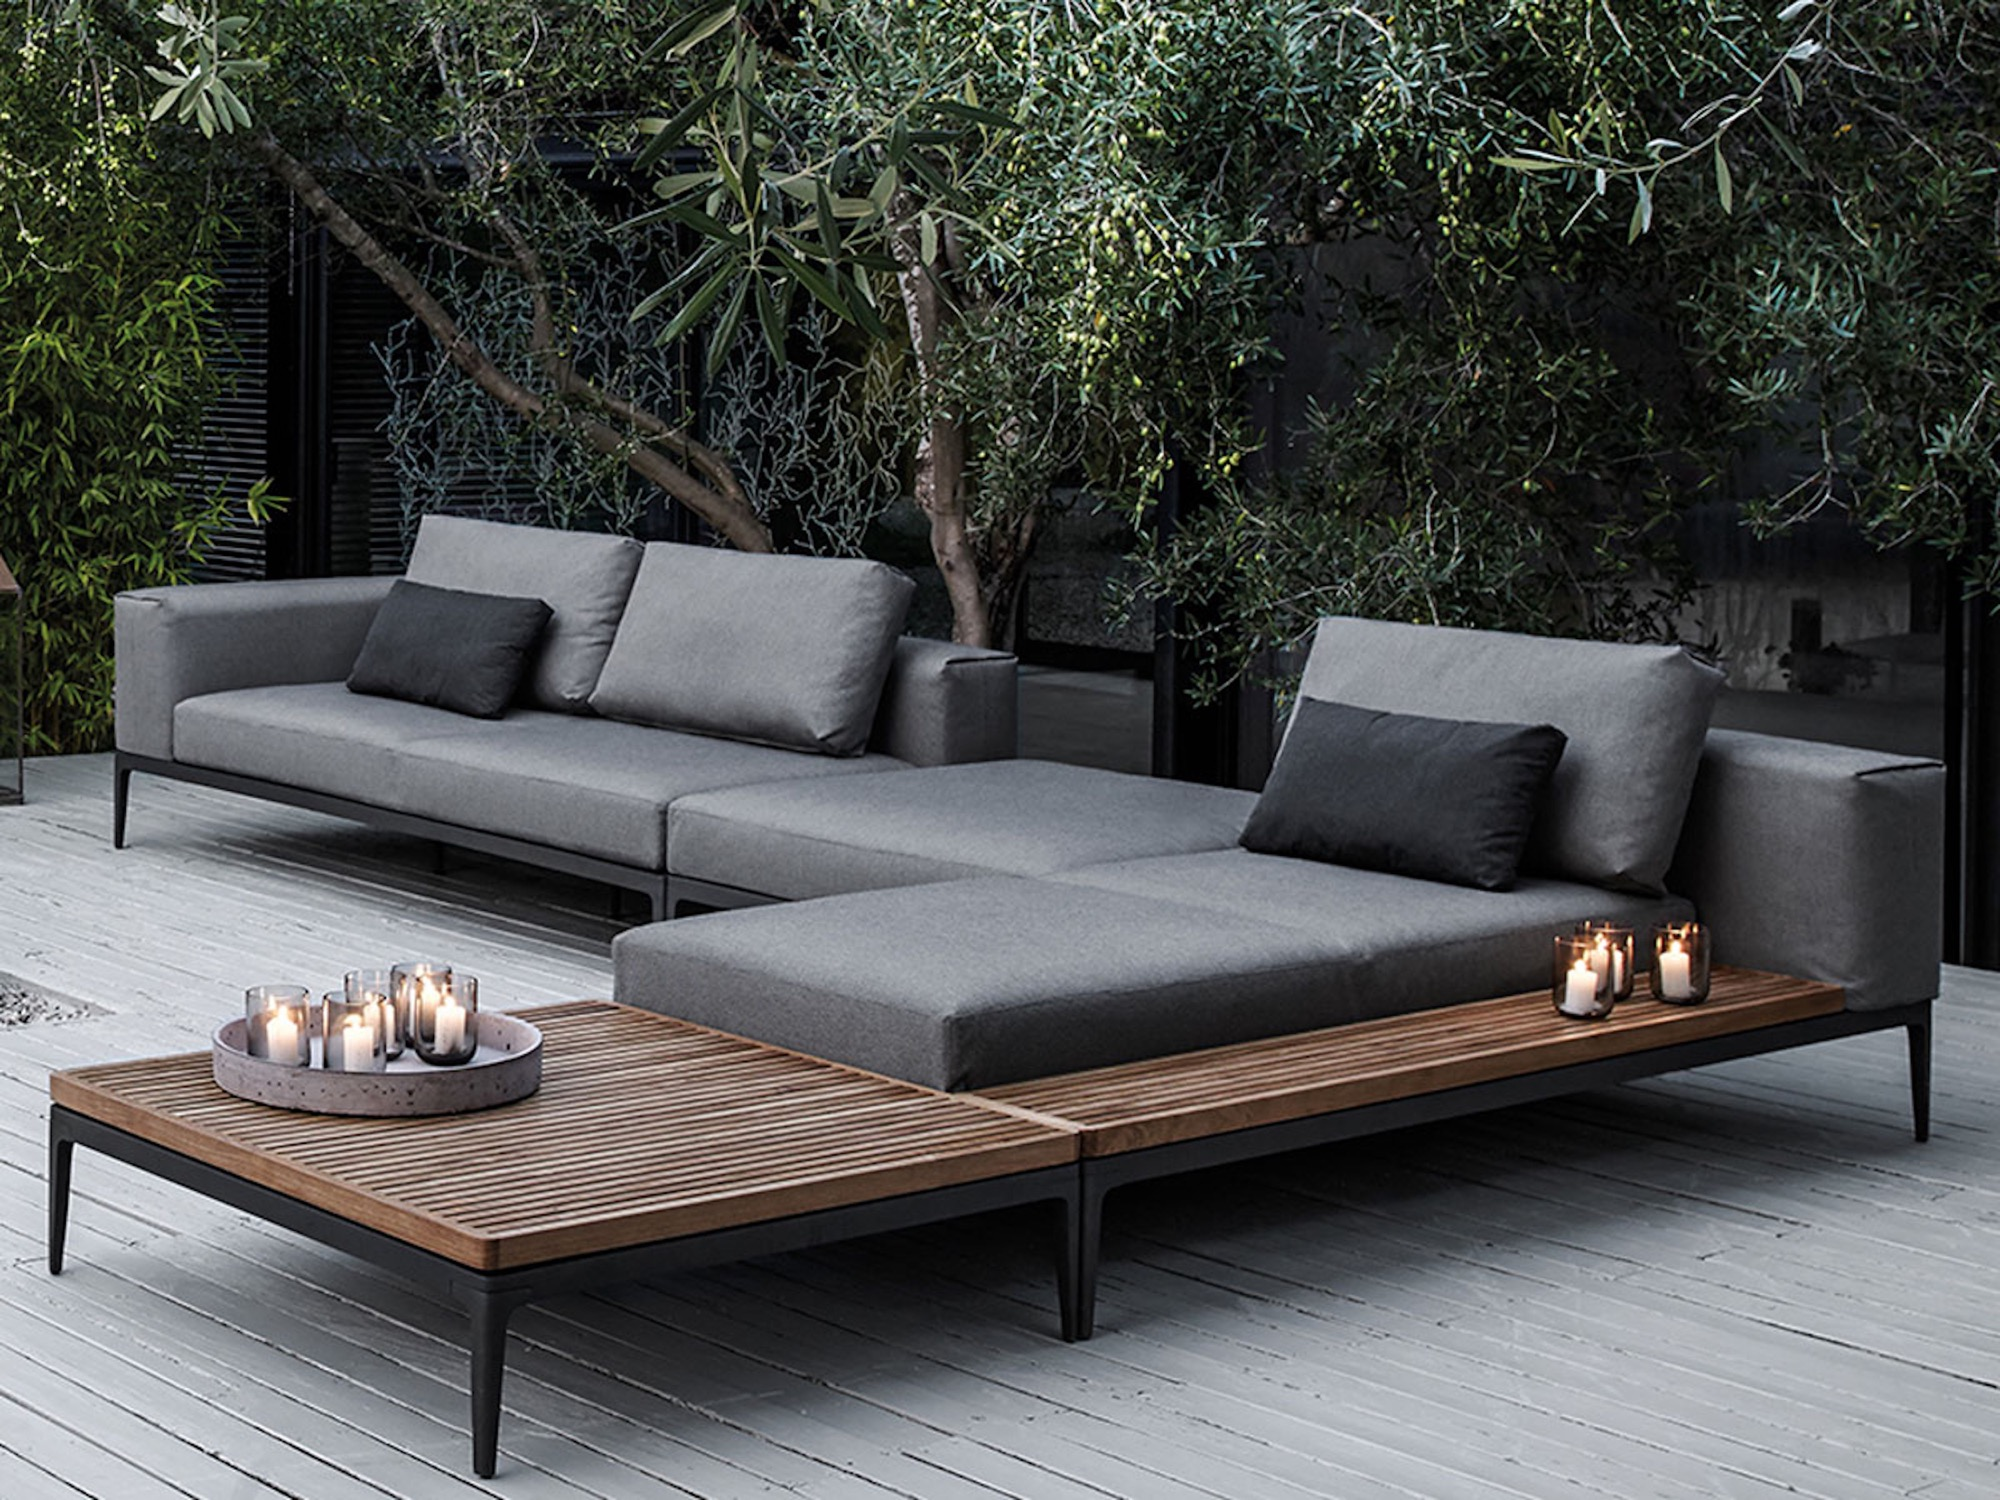 patio furniture: the new name of comfort. XVJZFMG